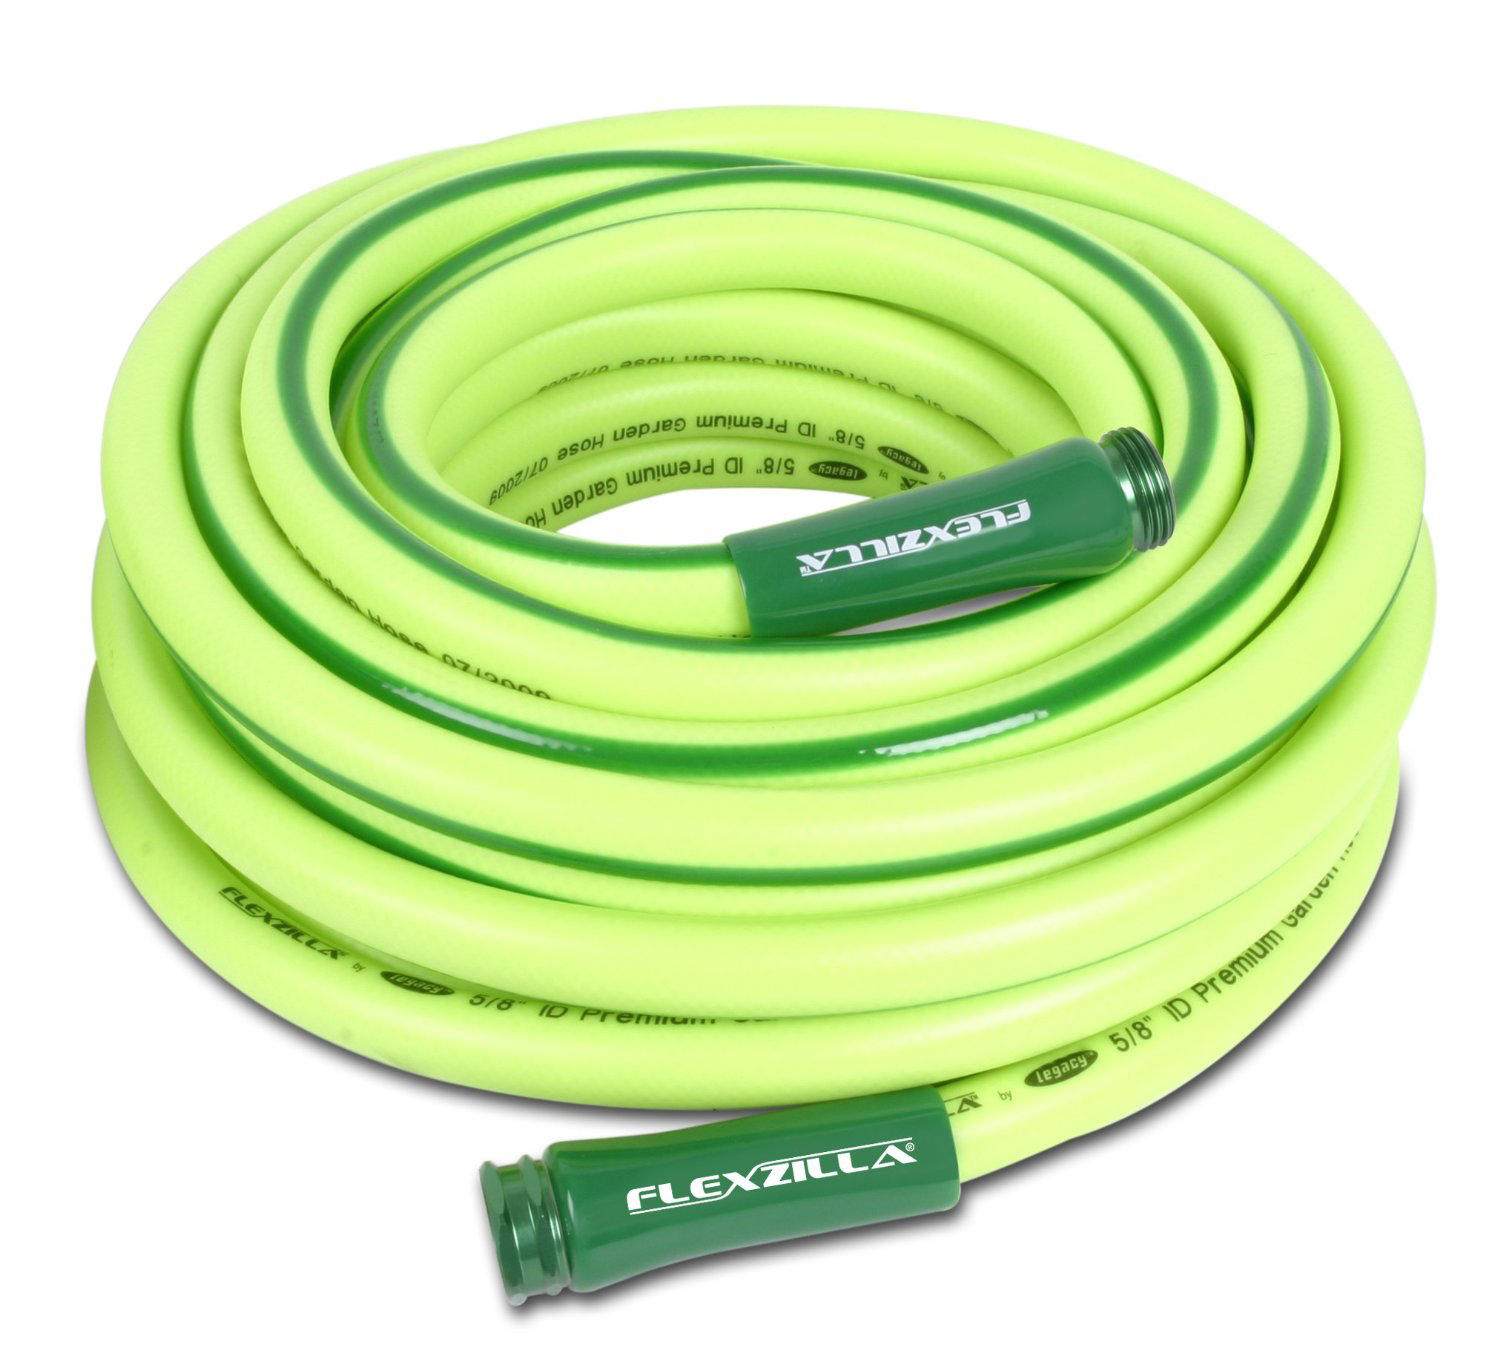 Flexzilla® Drinking Water Safe Garden Hose With Extreme All Weather  Flexibility   Walmart.com